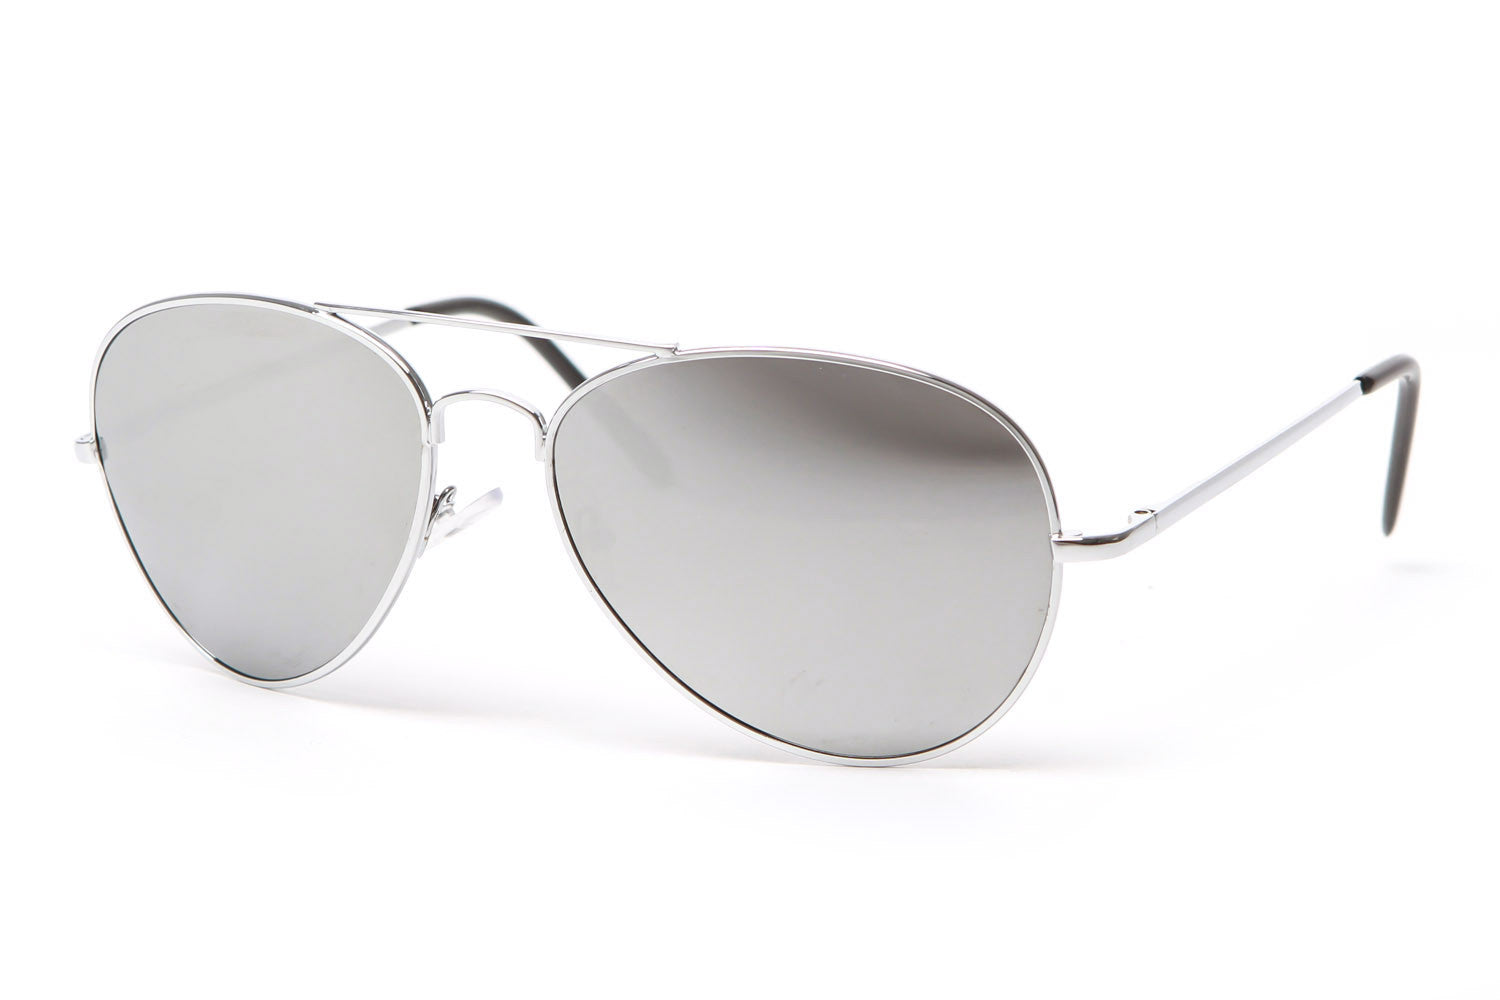 Elite Revo Mirror Aviator Sunglasses